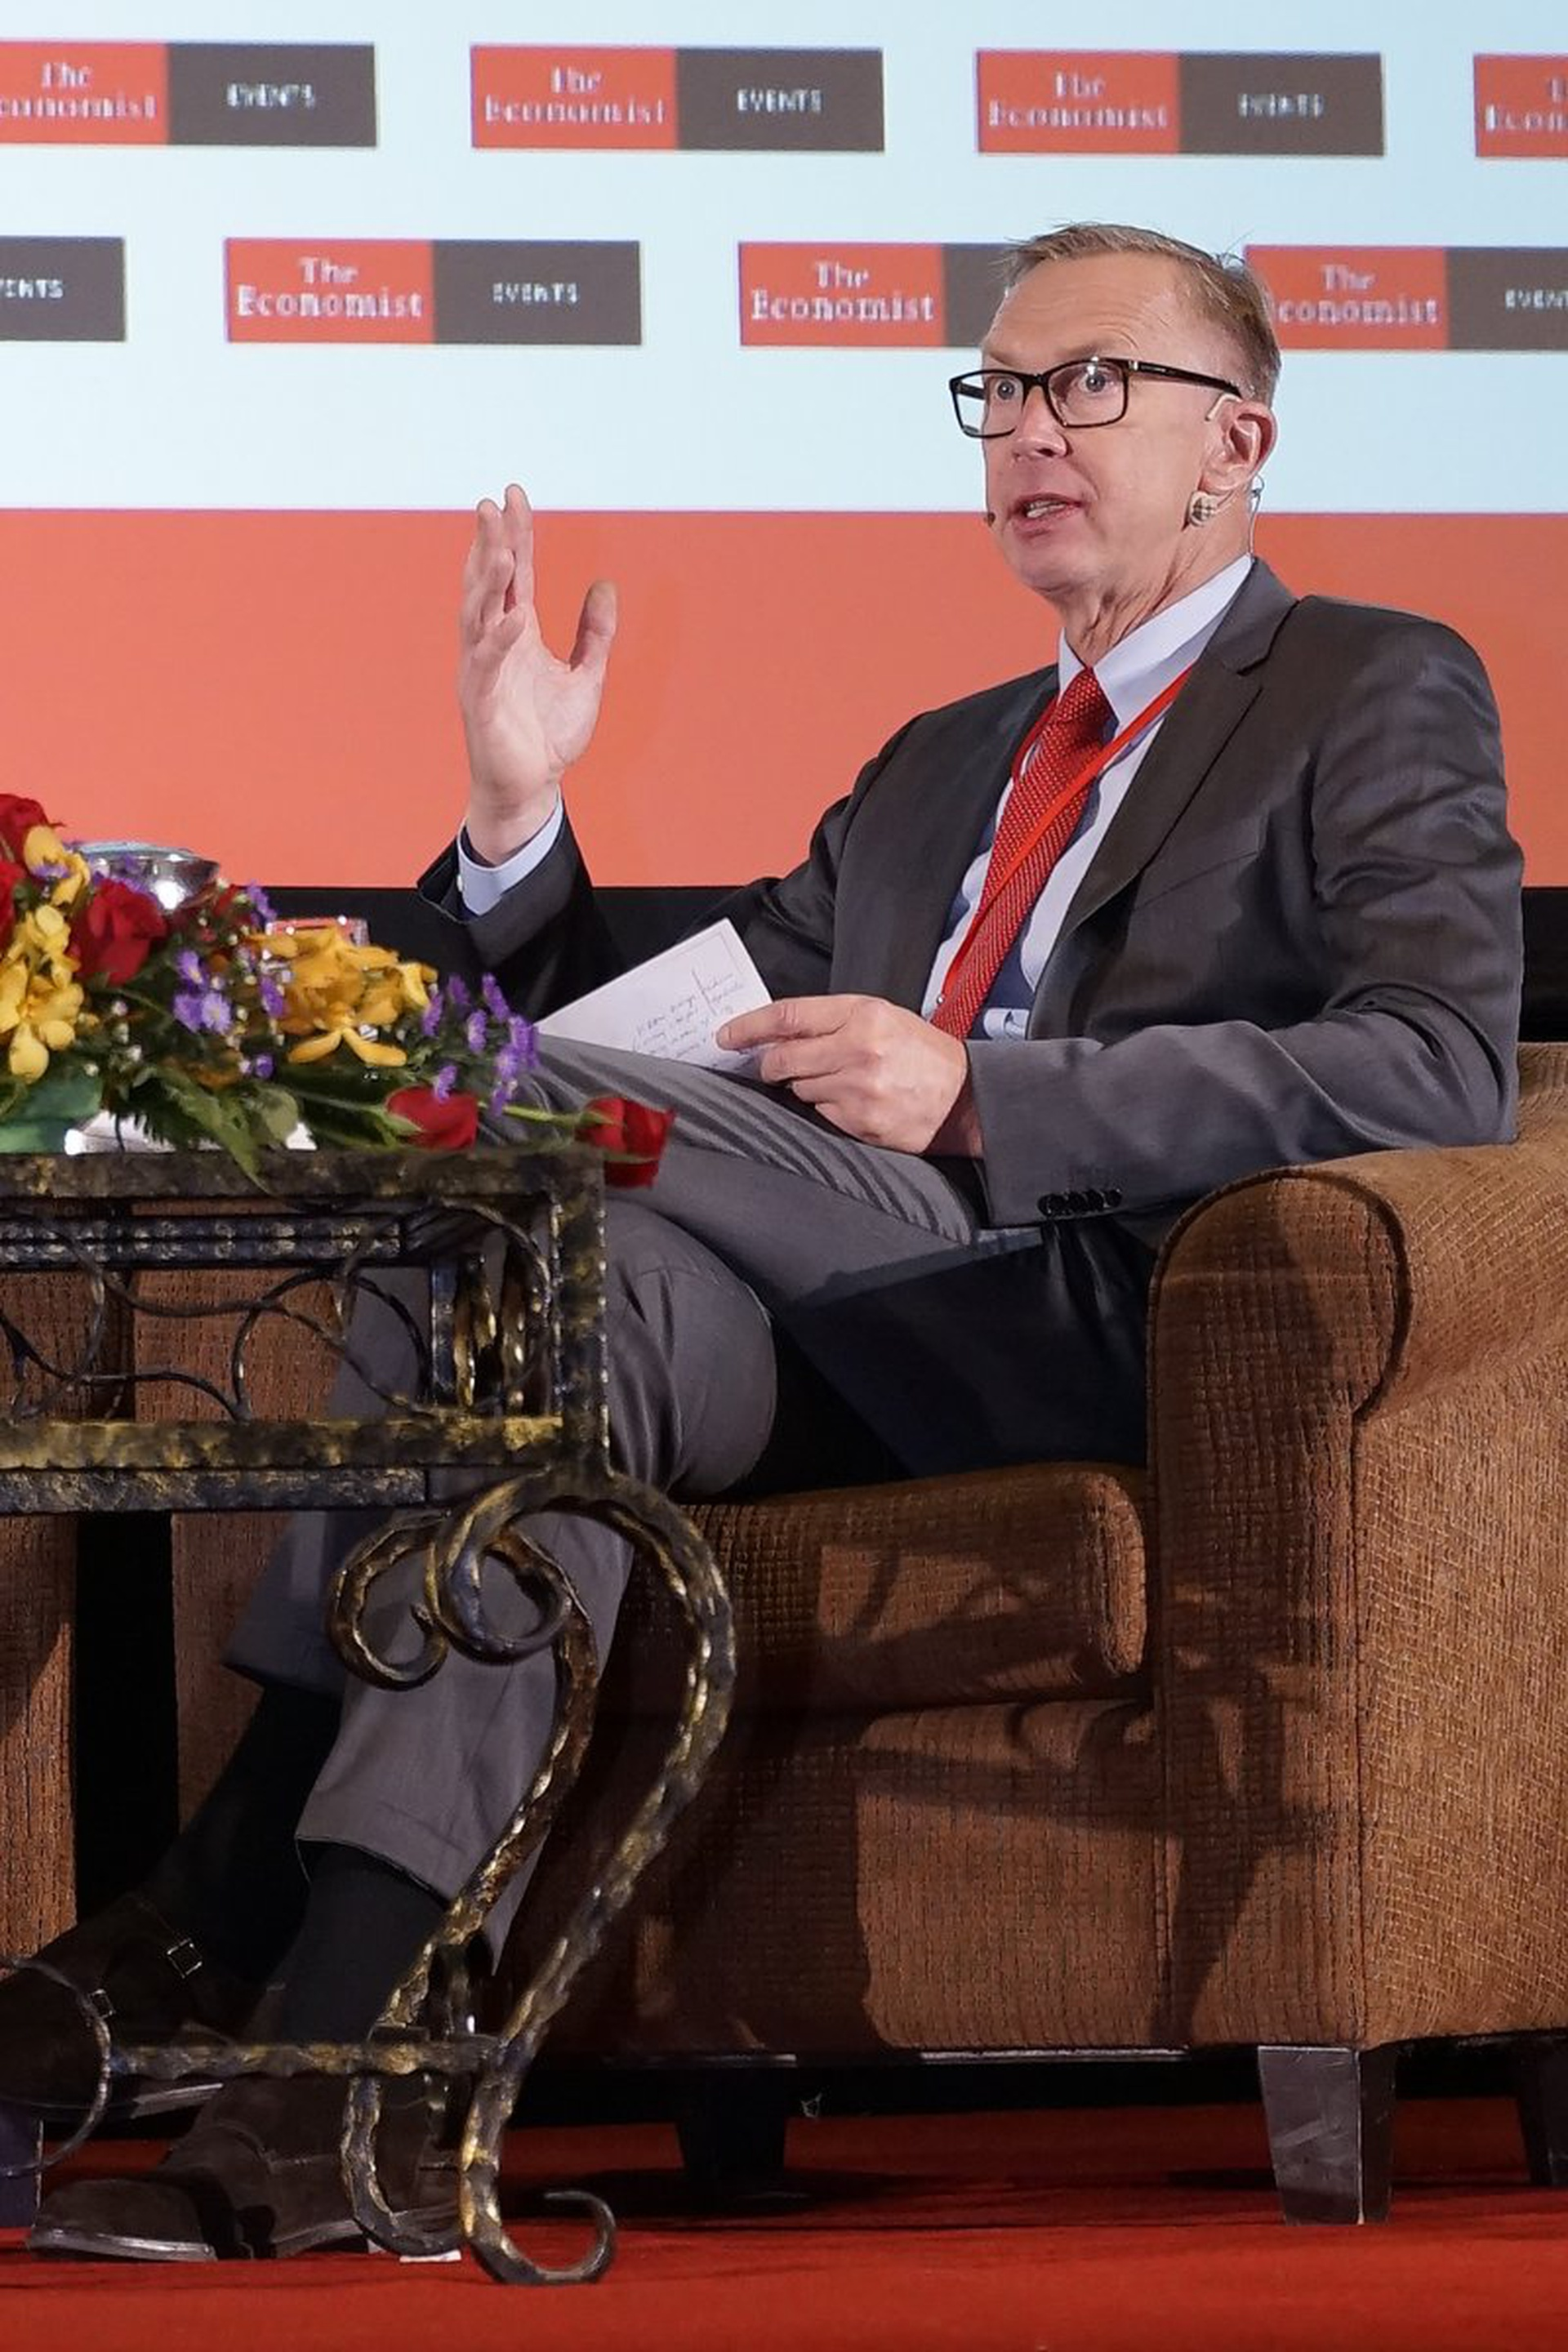 stefanr-economist-sustainability-summit-2018-106202.jpg